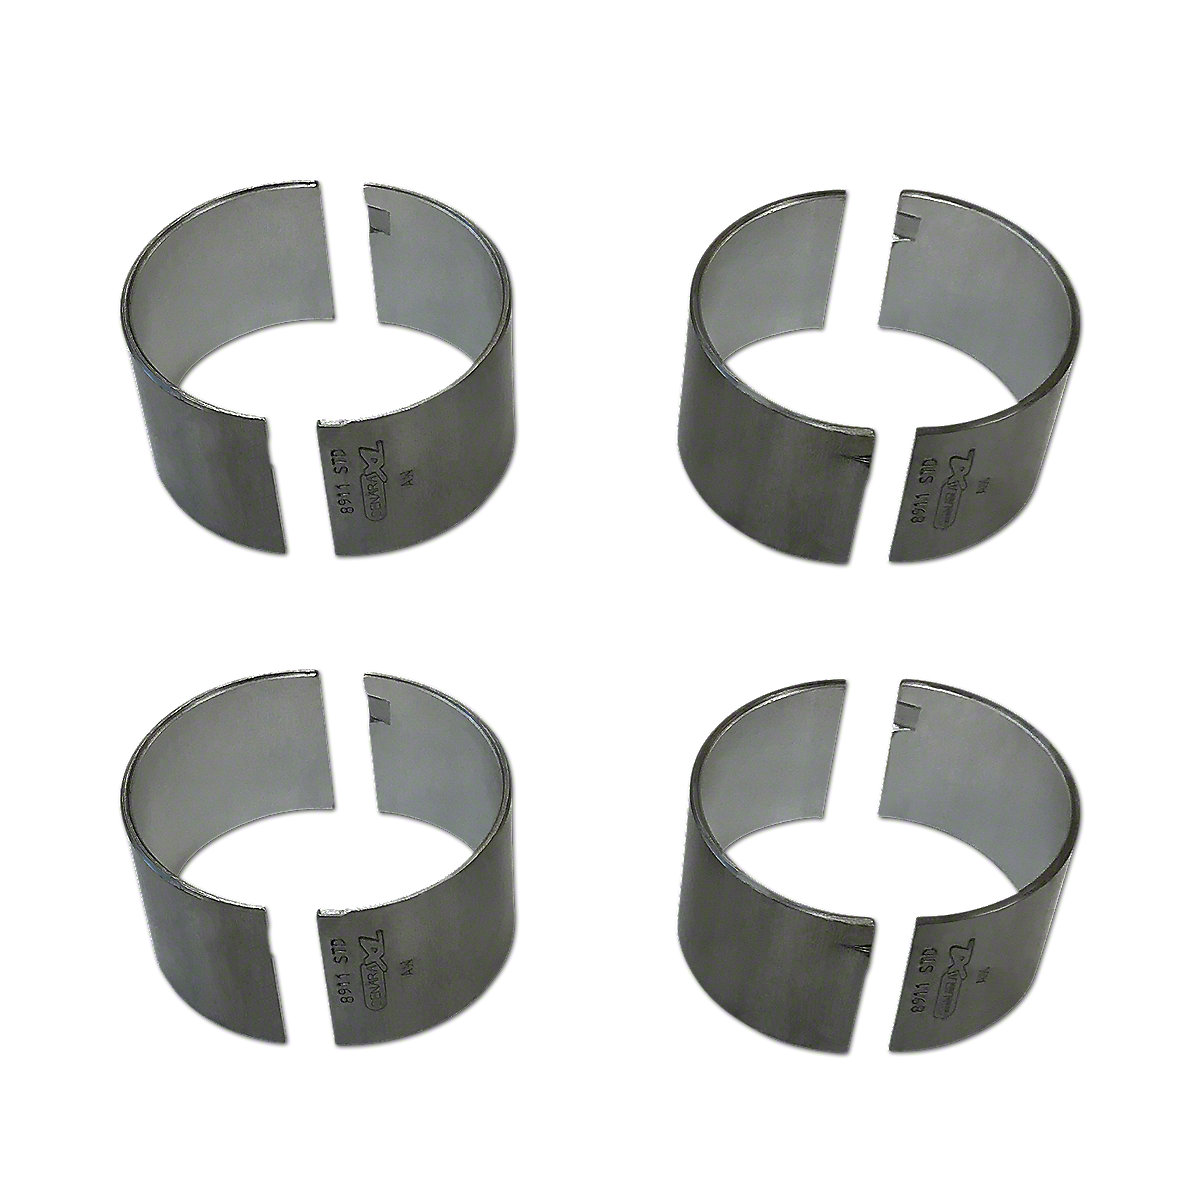 "IHS3878 .030"" Connecting Rod Bearing Set"